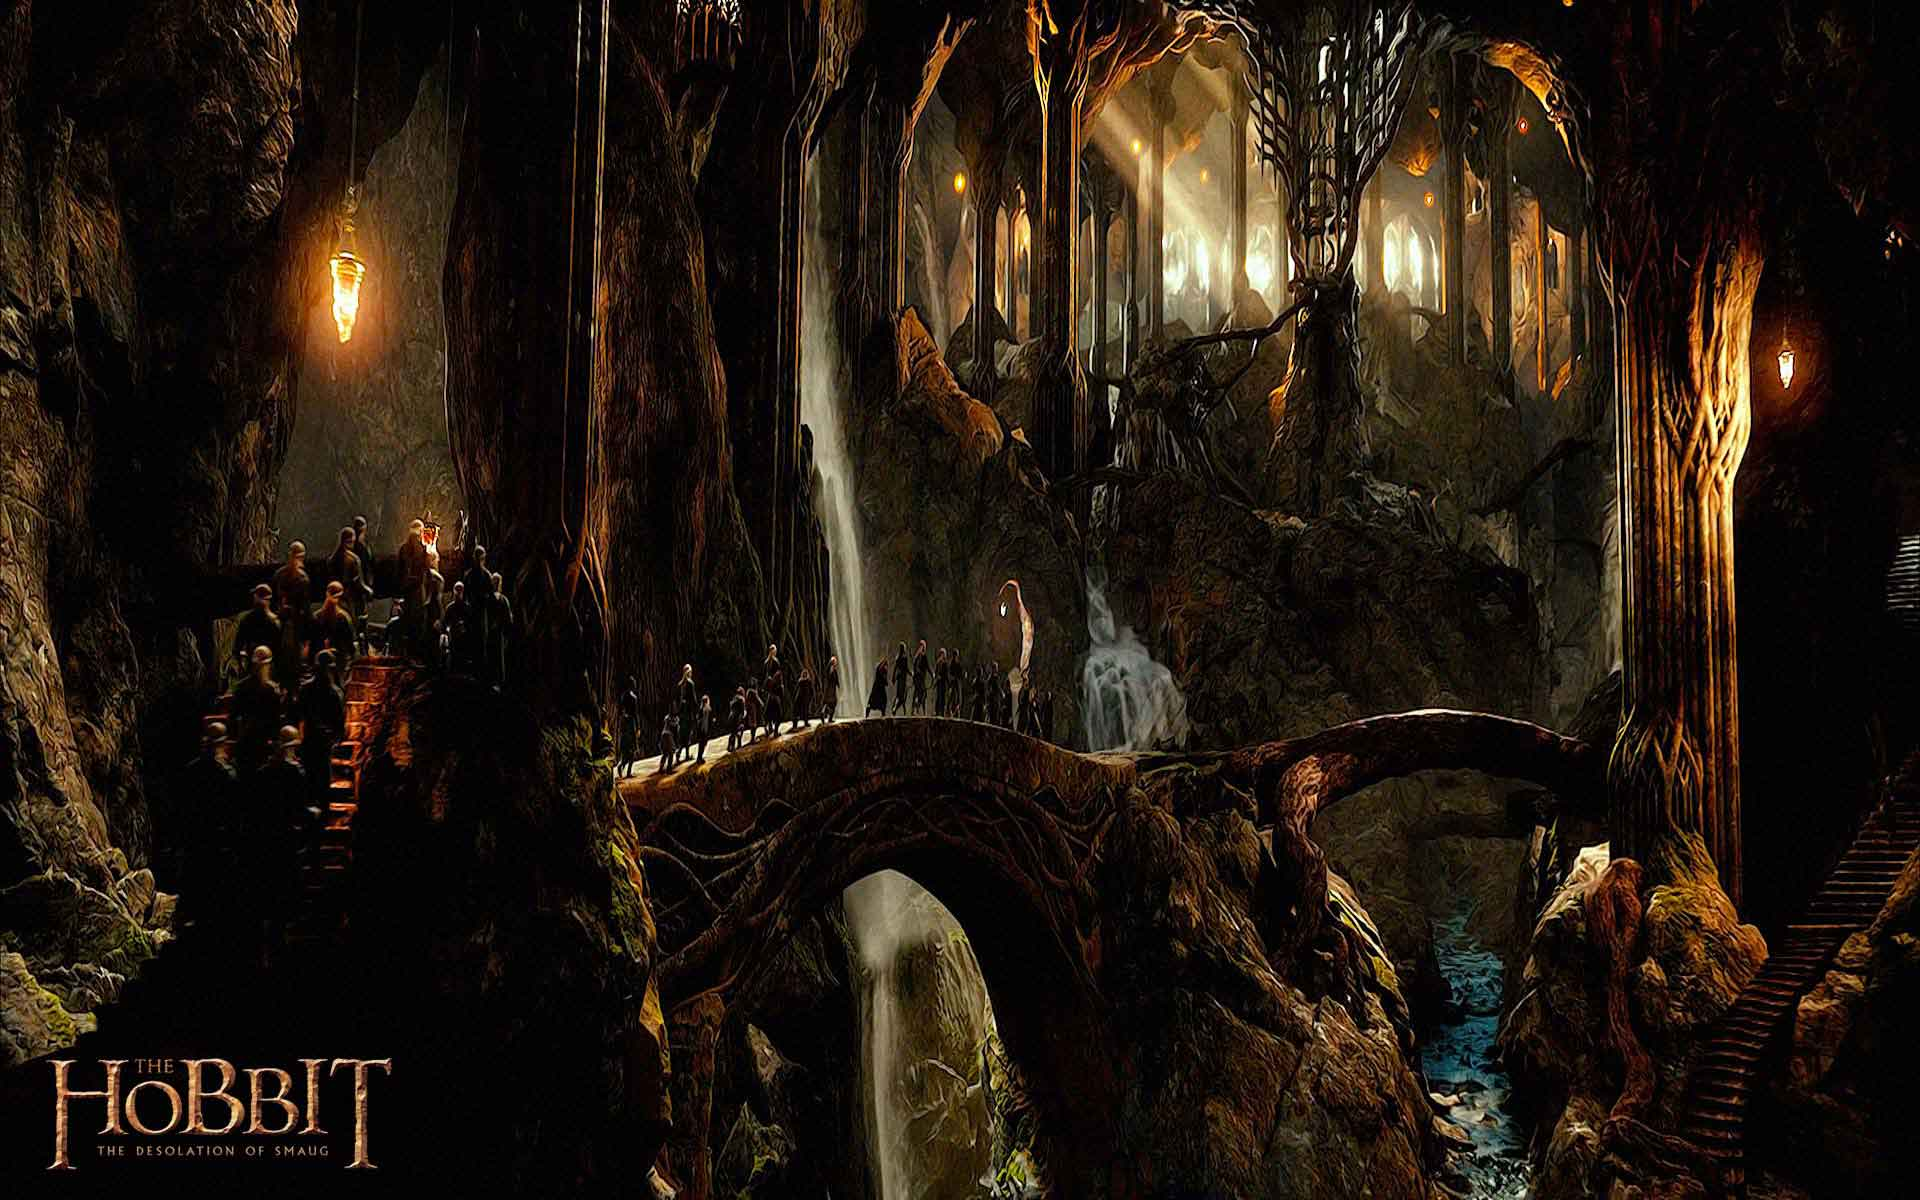 the hobbit desolation of smaug wallpapers hd backgrounds1 Hobbit 1920x1200